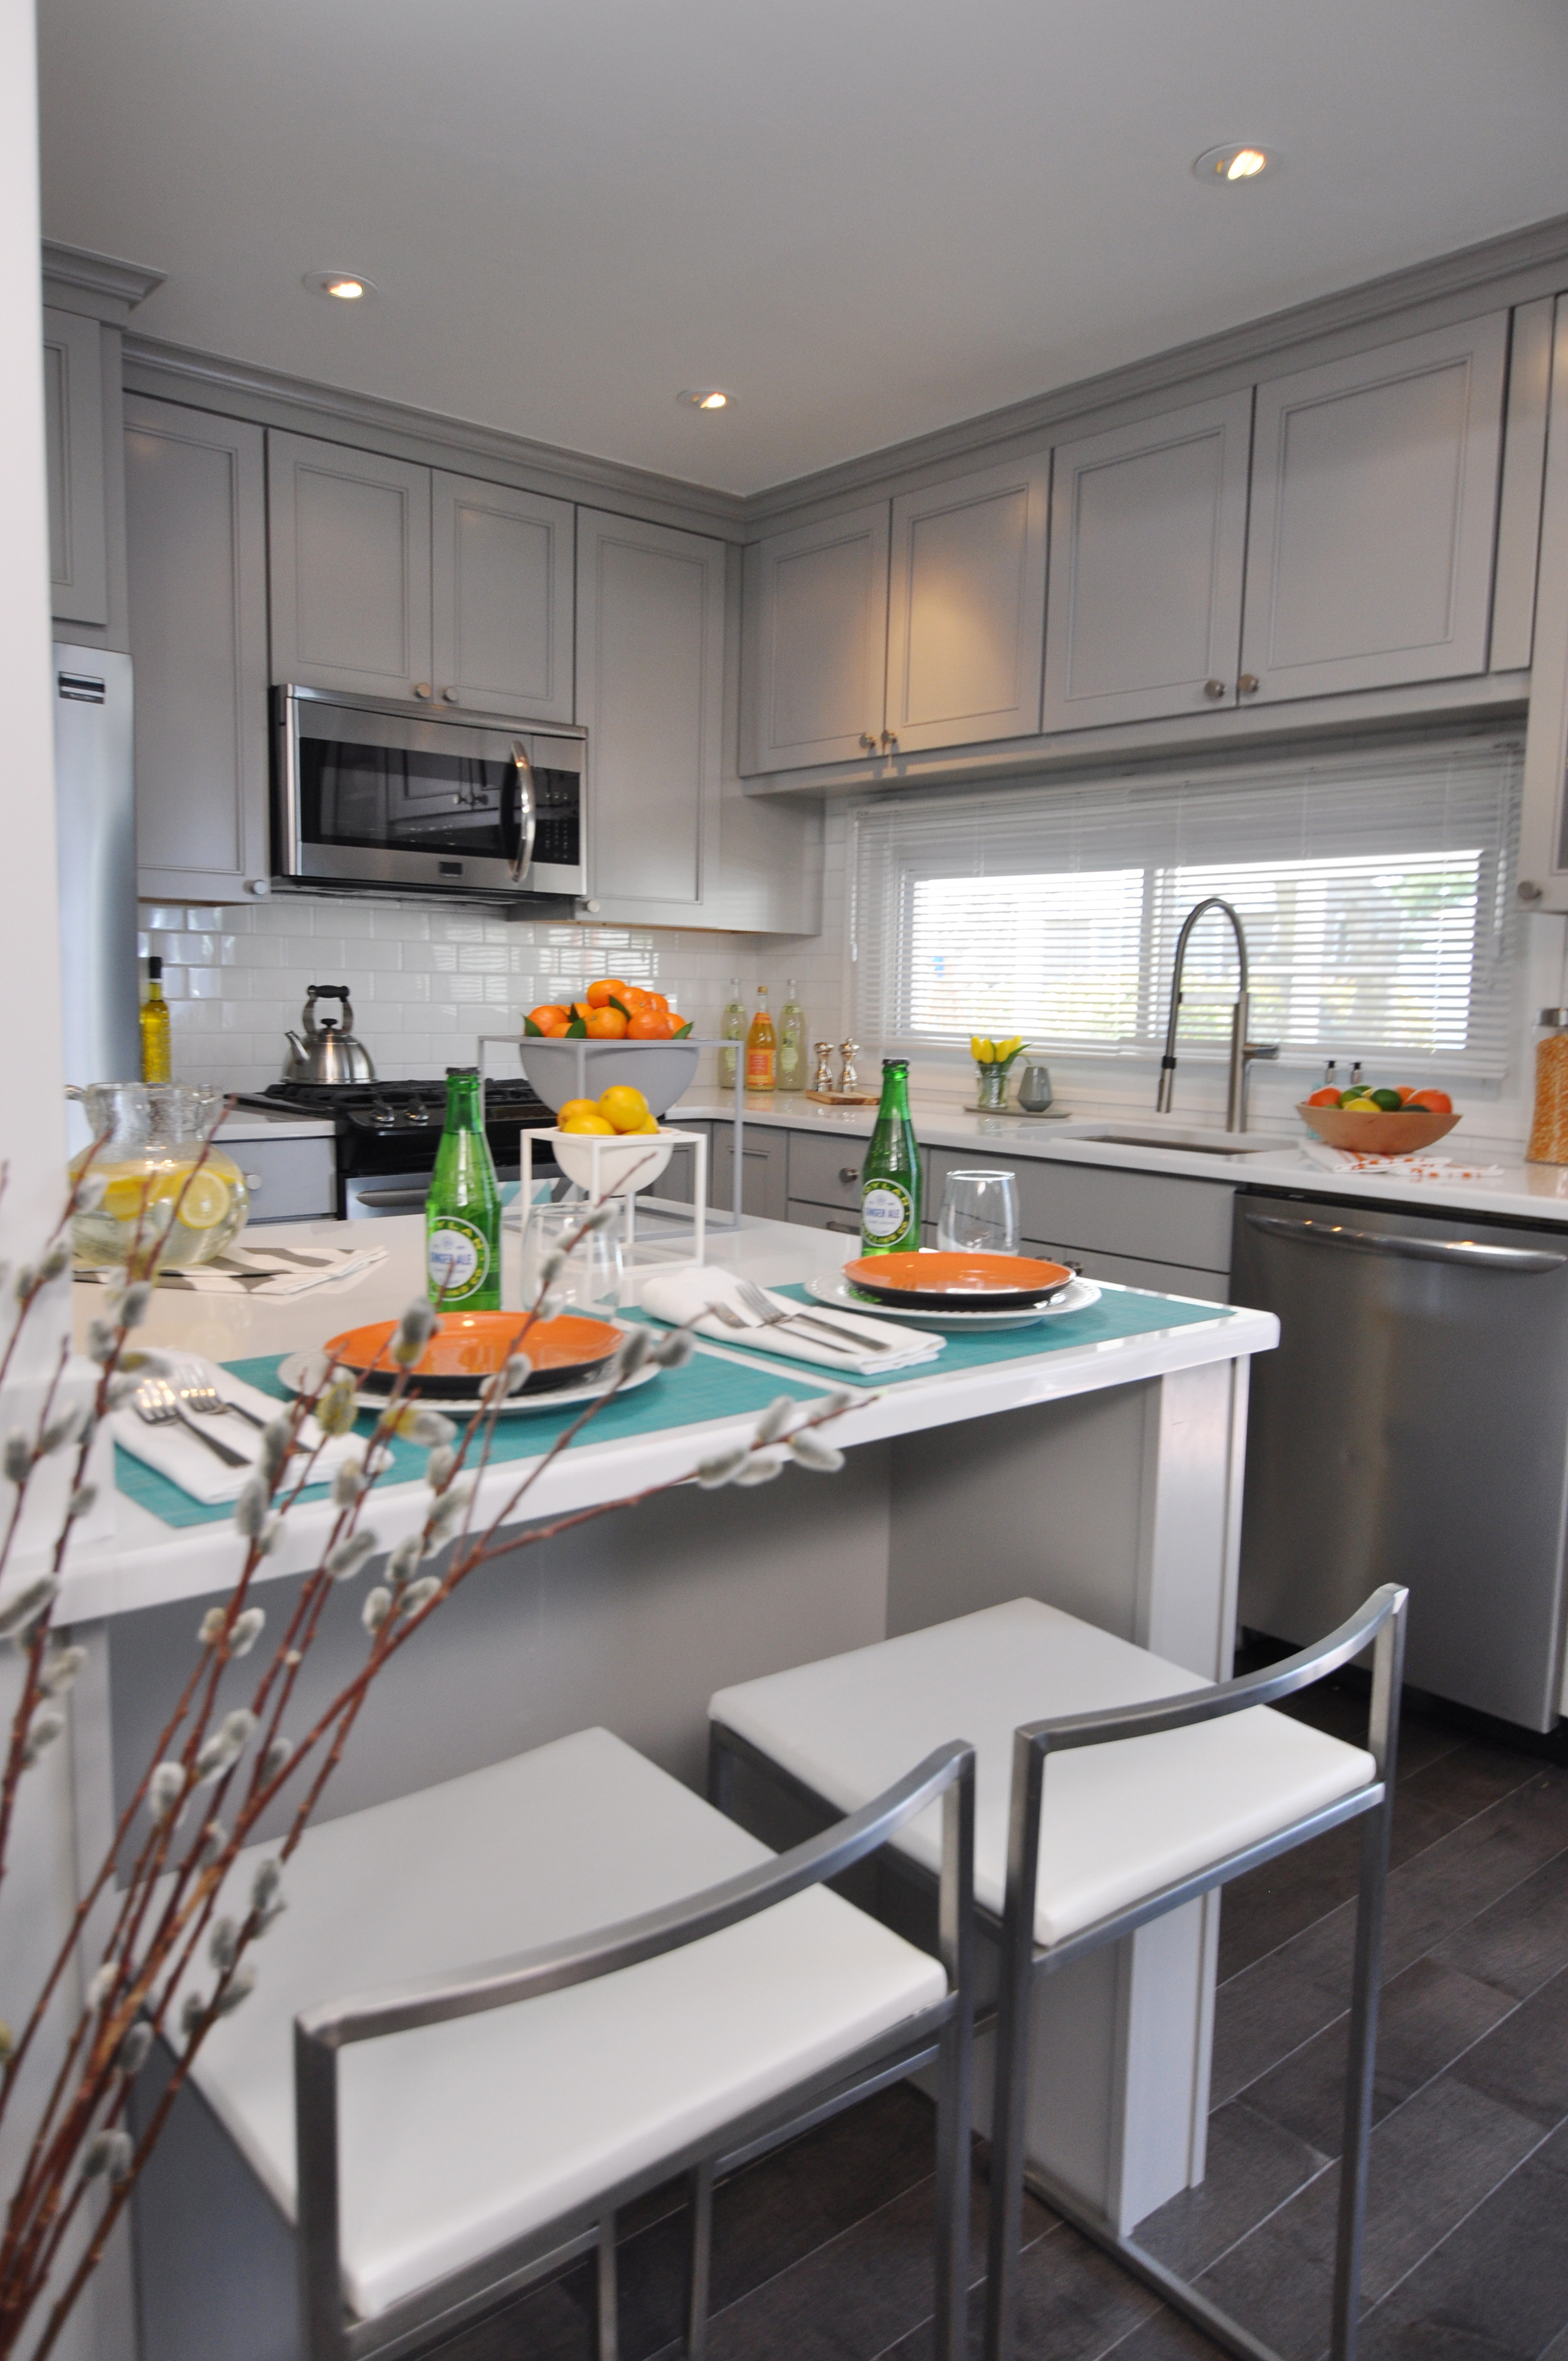 Kim Mitchell_Production Designer_HGTV_Buying and Selling with The Property Brothers_Kitchen Remodel_Grey Kitchen Cabinets_Kitchen Island_Grey Modern Kitchen.jpg